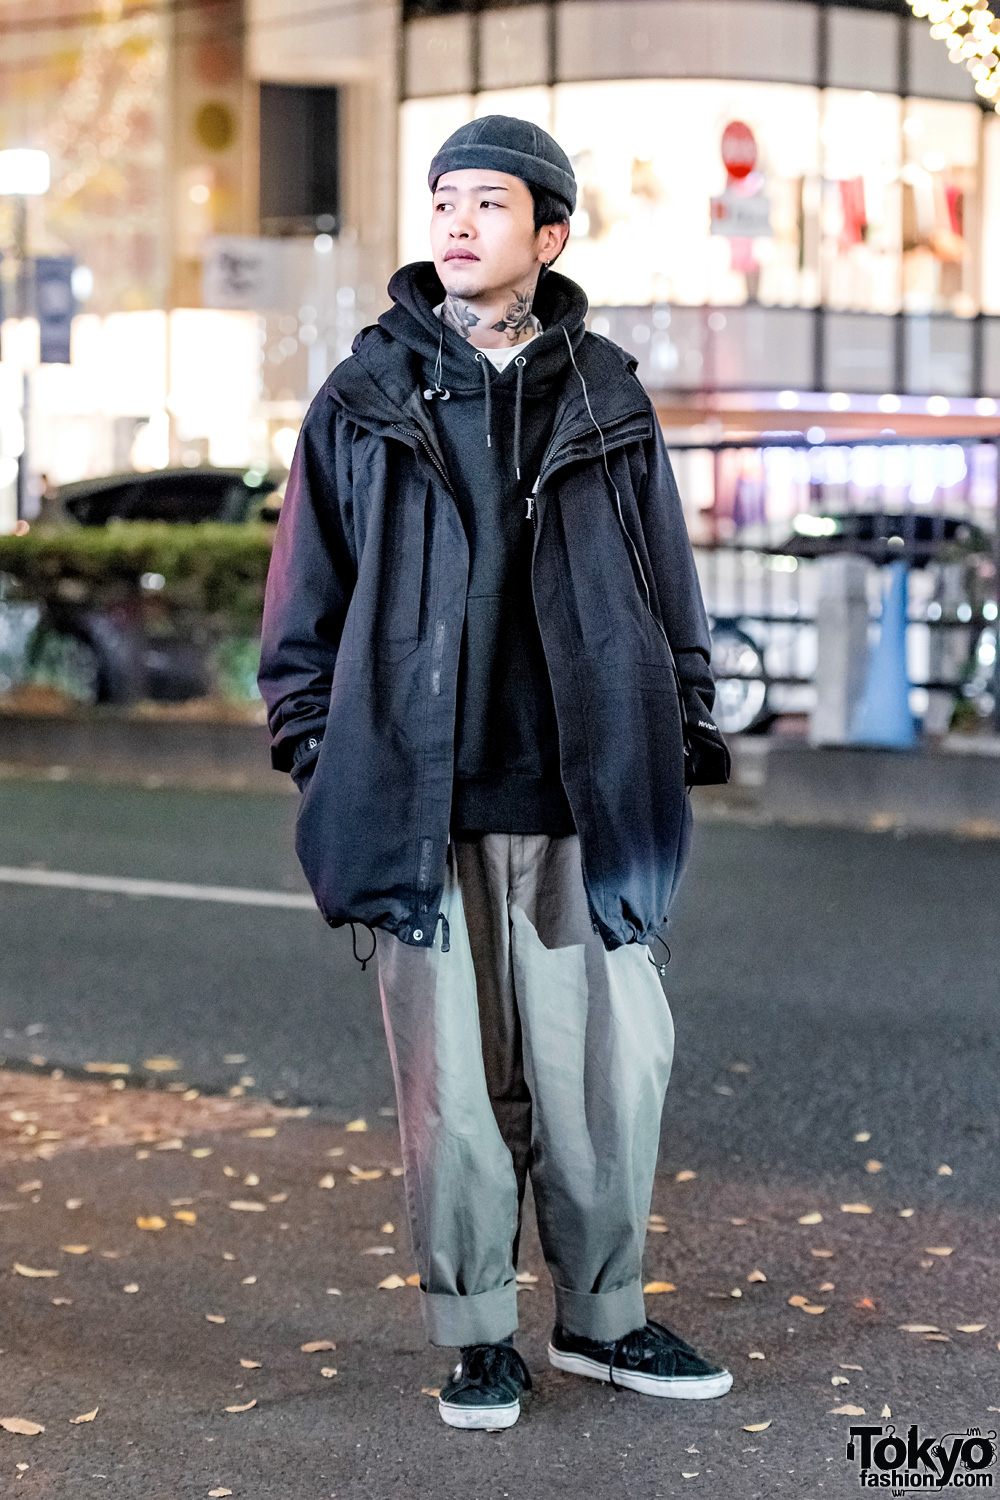 af0882095 Minimalist Vintage Streetwear Style w/ Neck Tattoos, The North Face, Comme  des Garcons & Vans